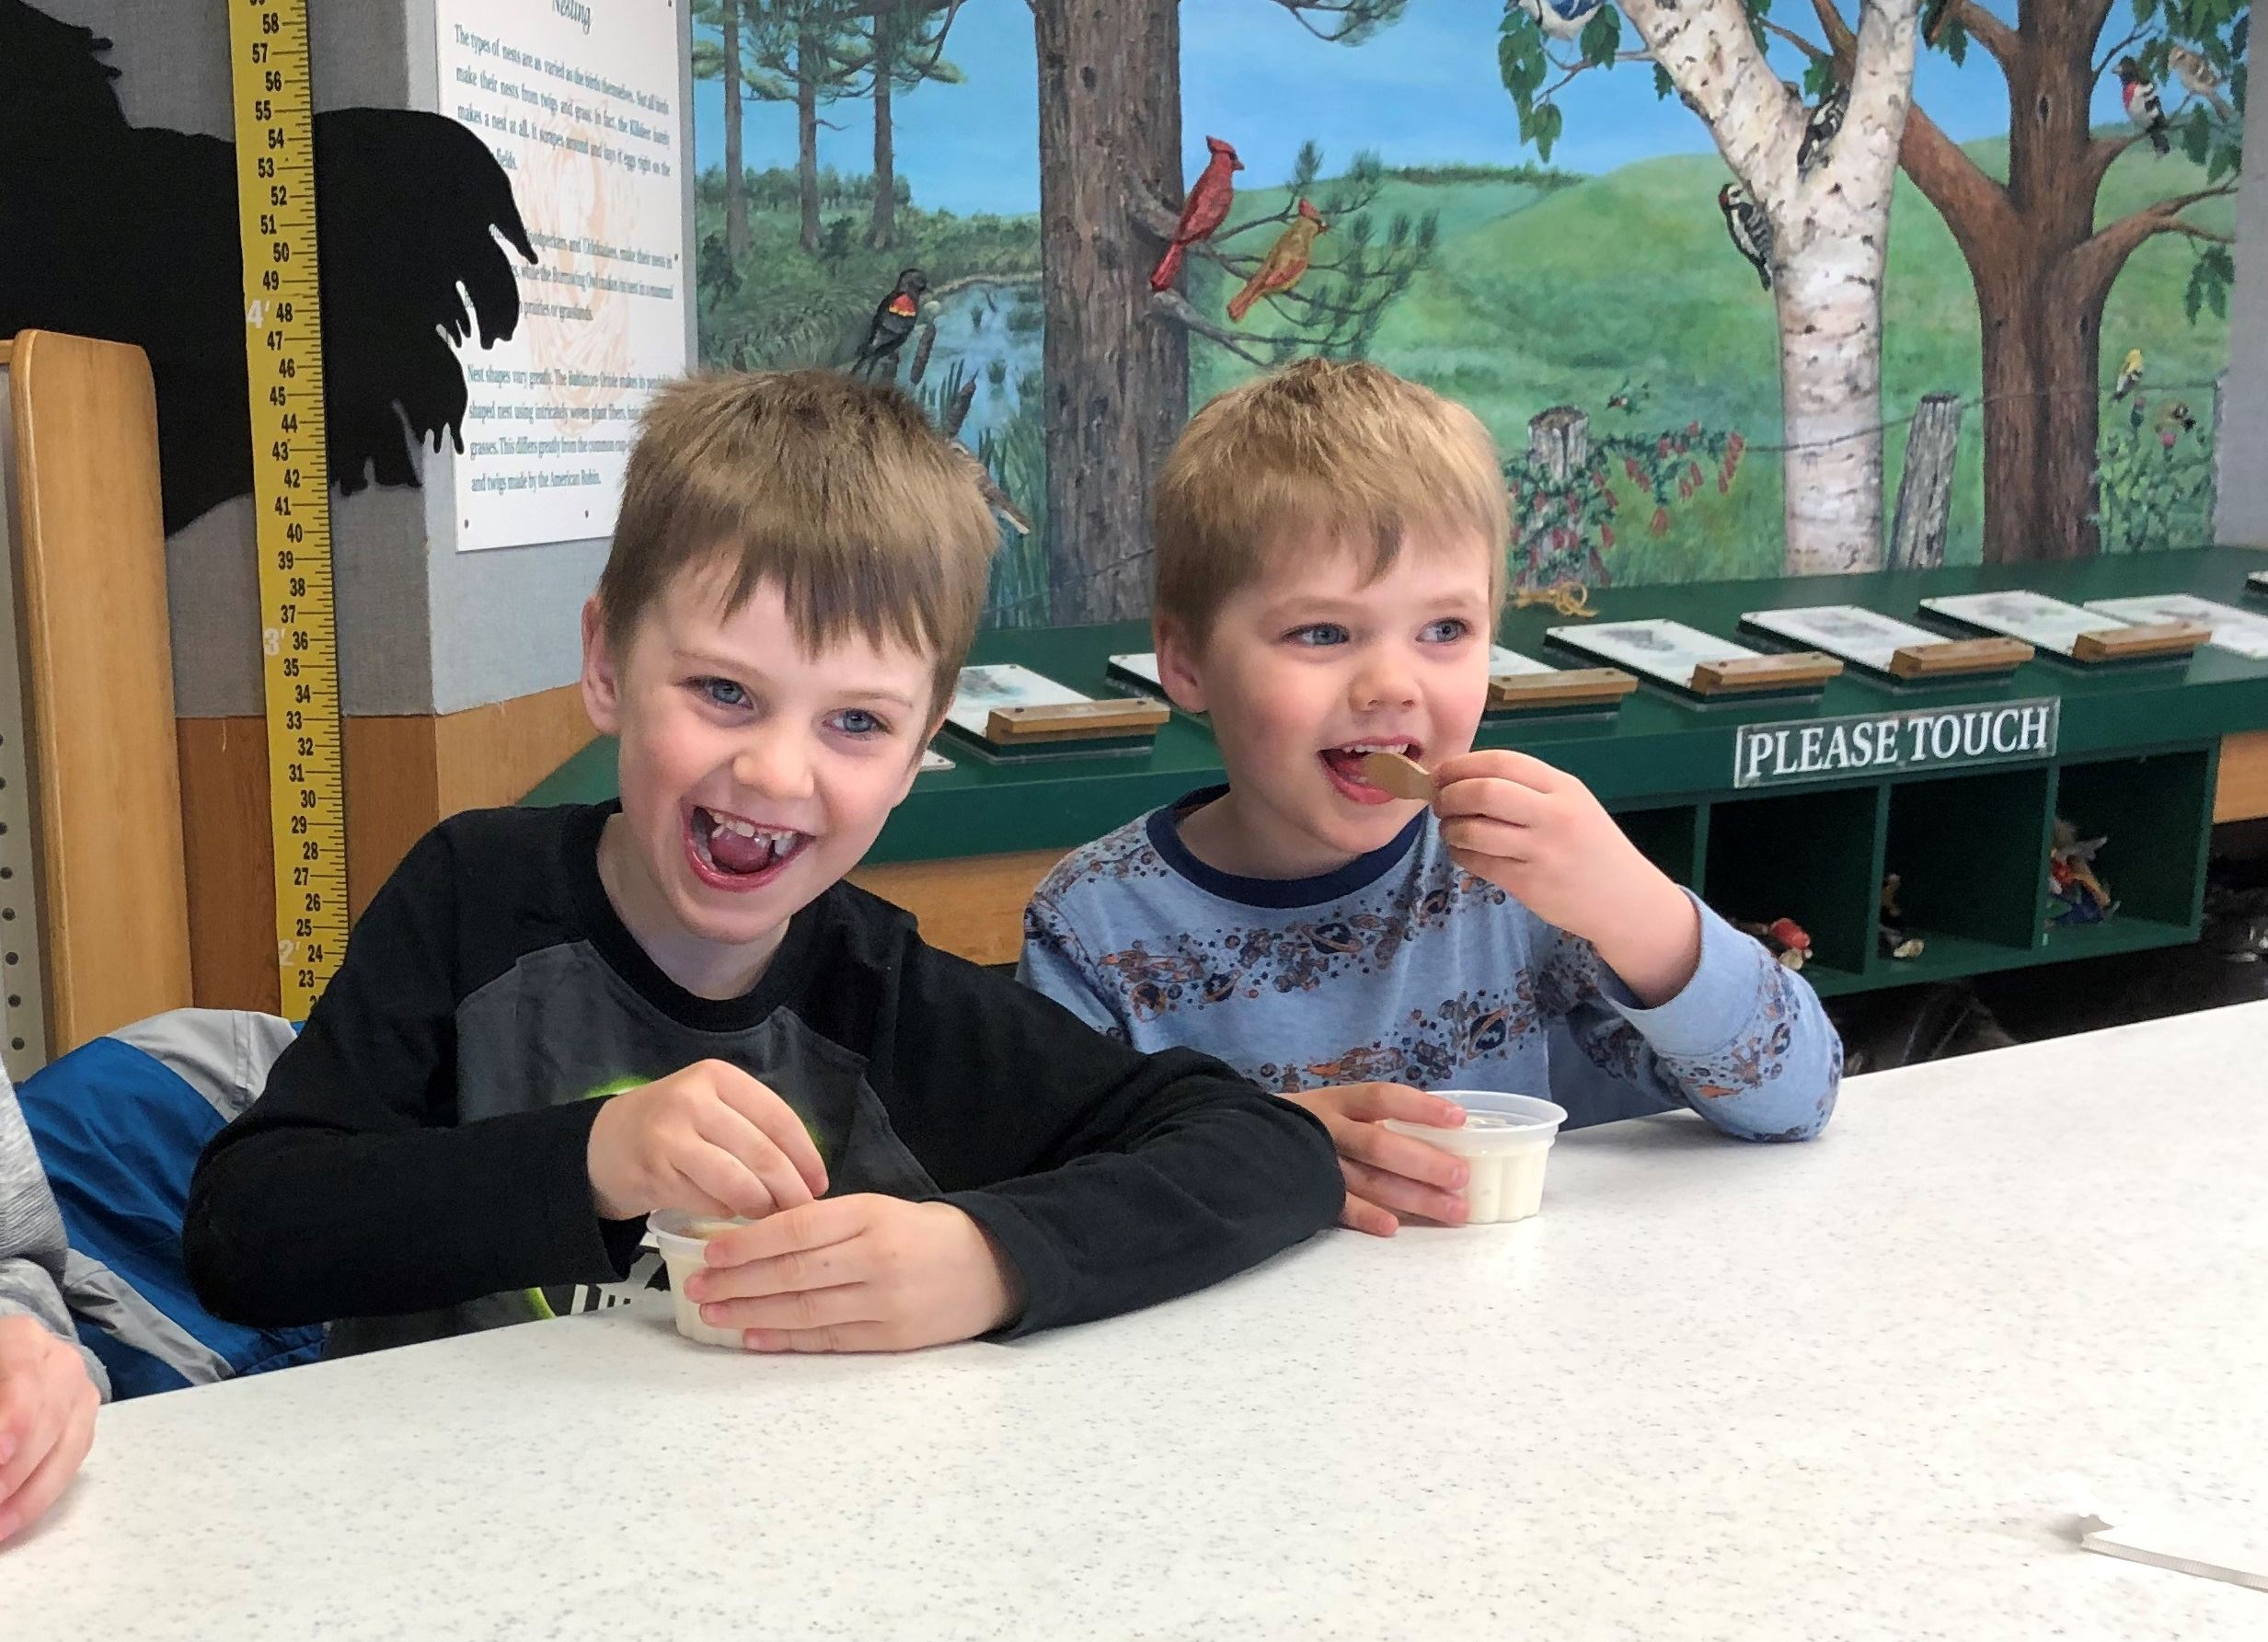 two boys eating ice cream with maple syrup on it